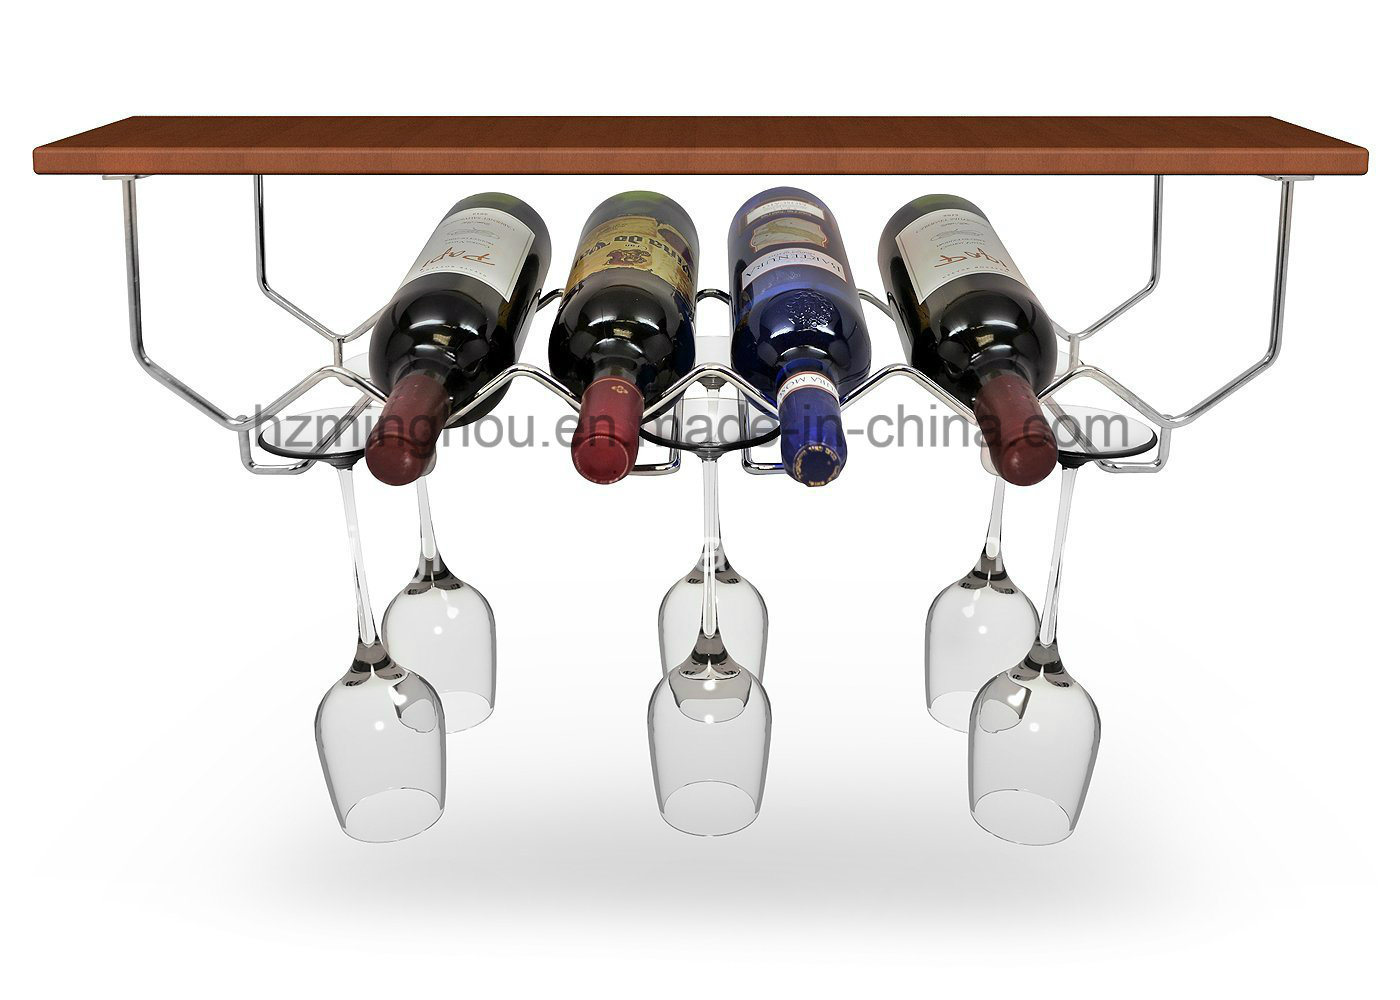 6-Bottles Metal Under Cabinet Wine Bottle Storage Glassware Holder